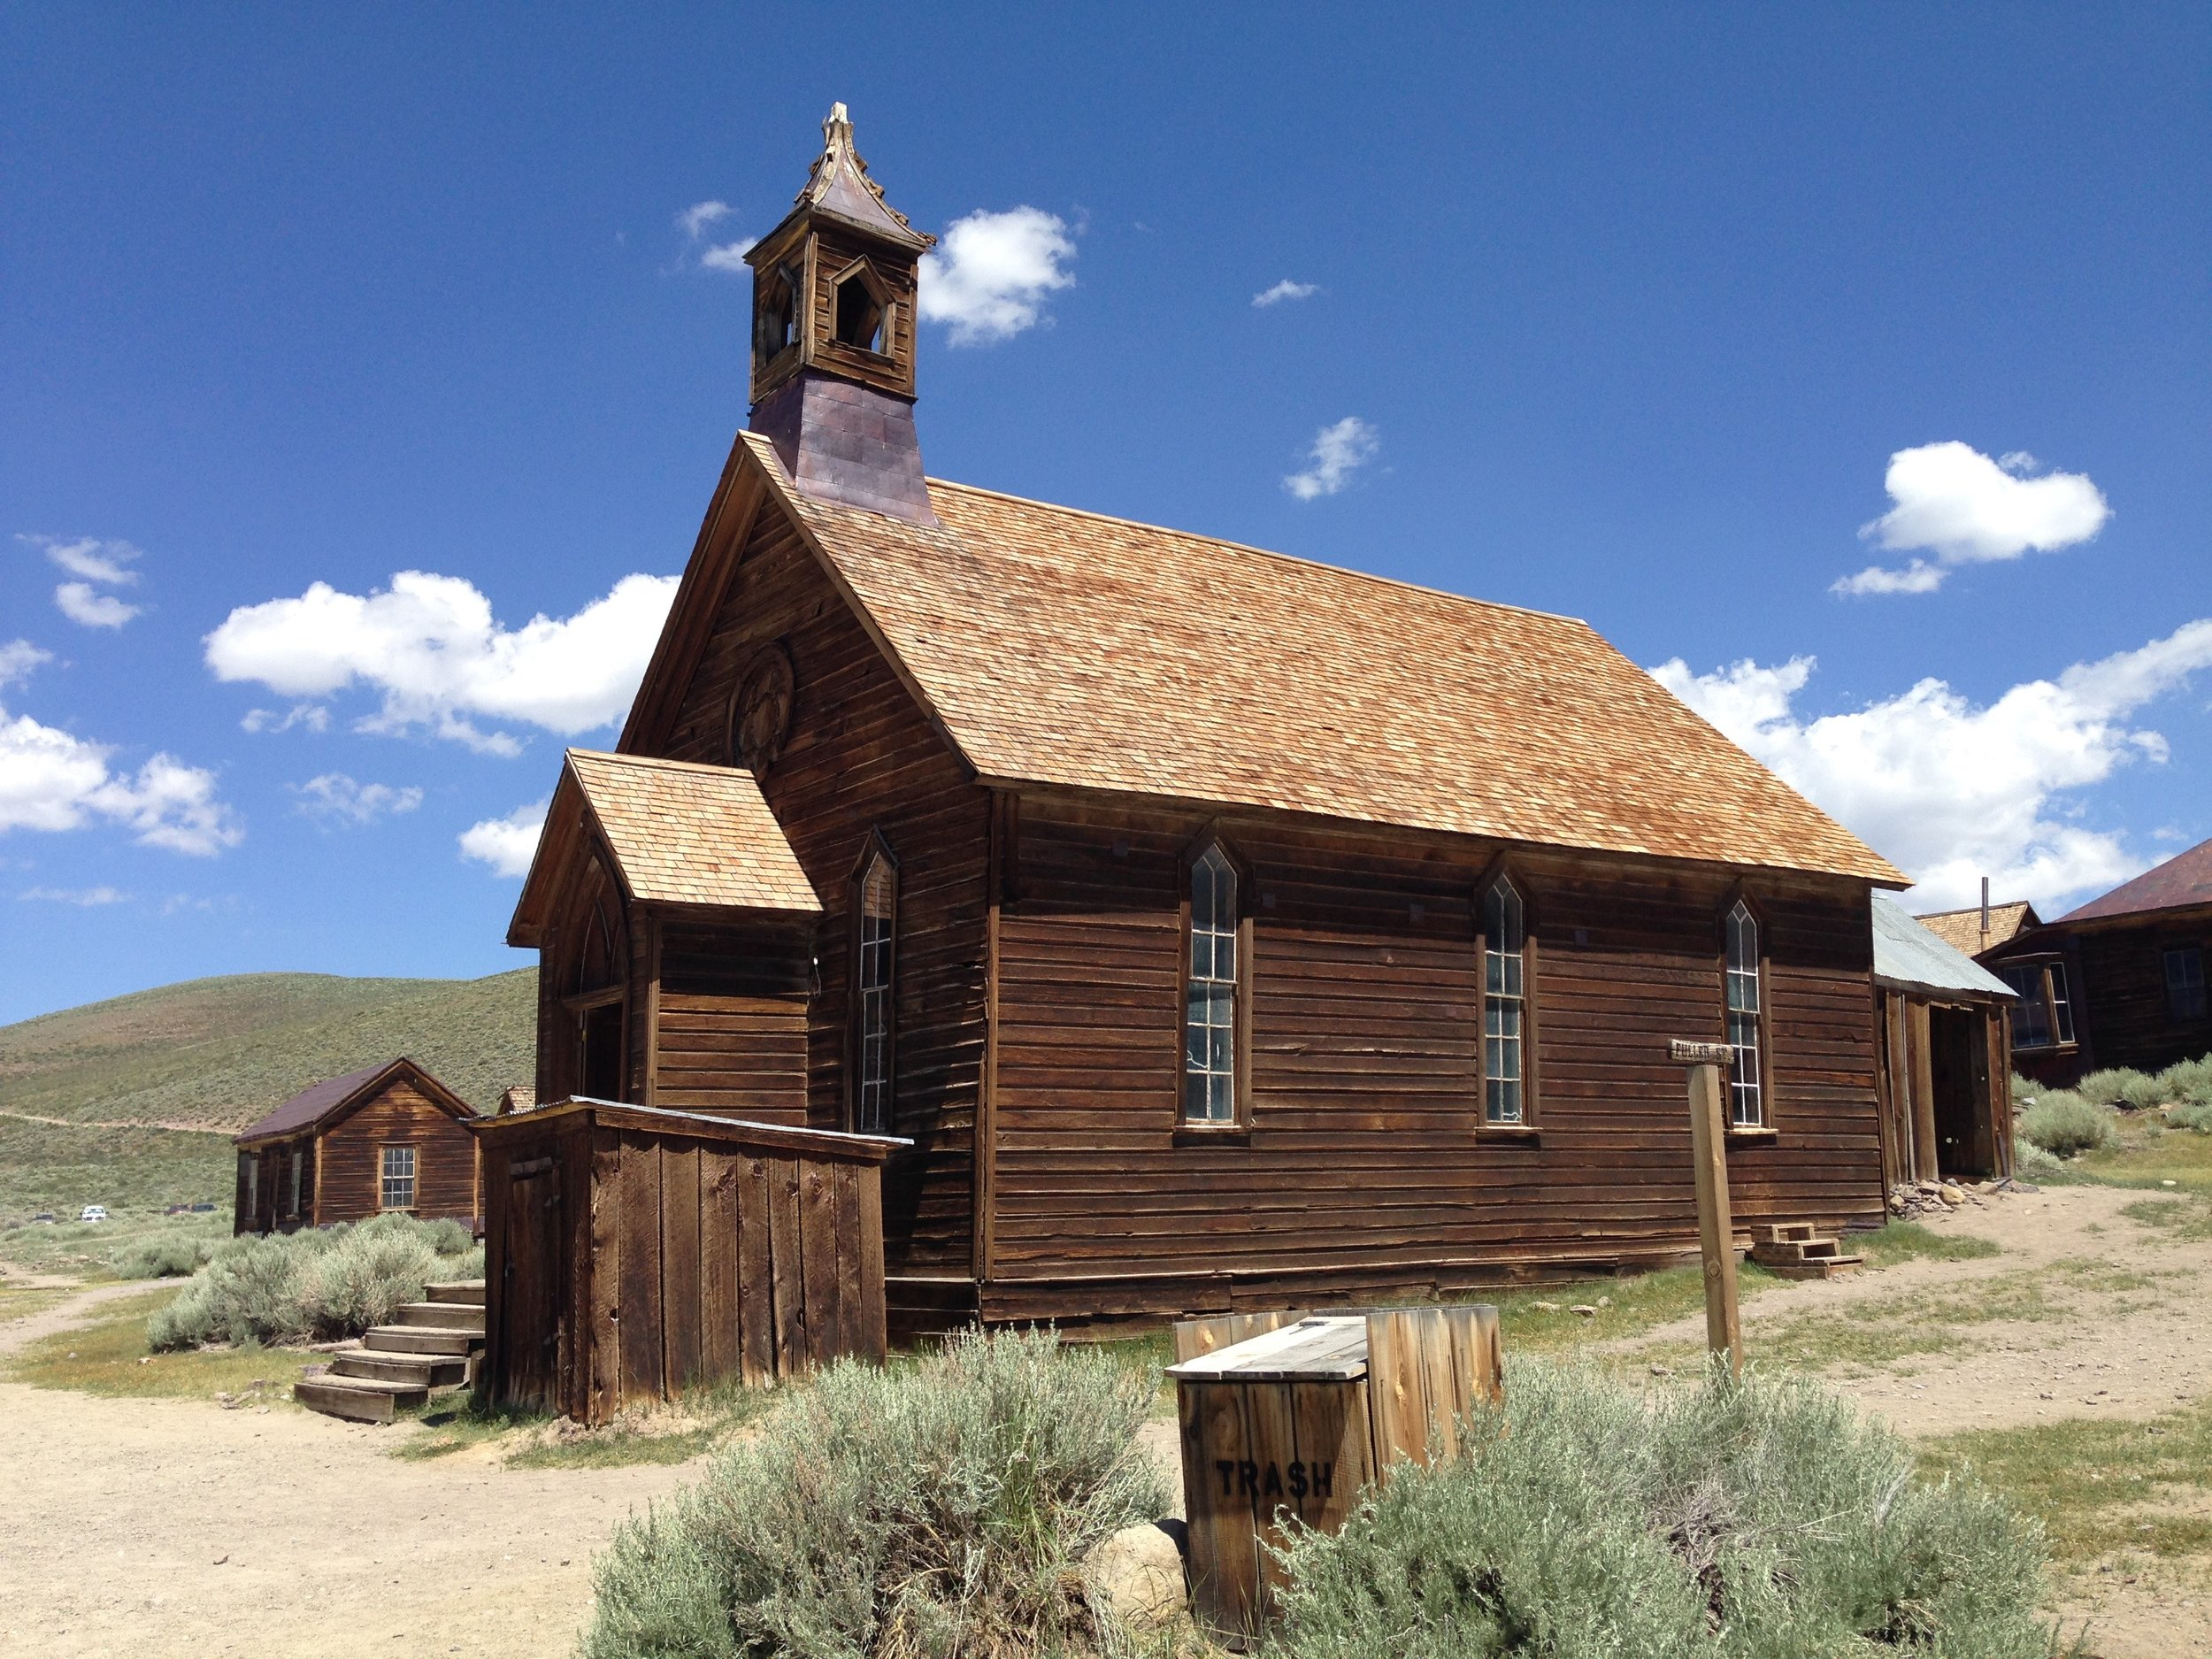 The Methodist Church was erected in 1882 and still stands. The last service held in 1932.